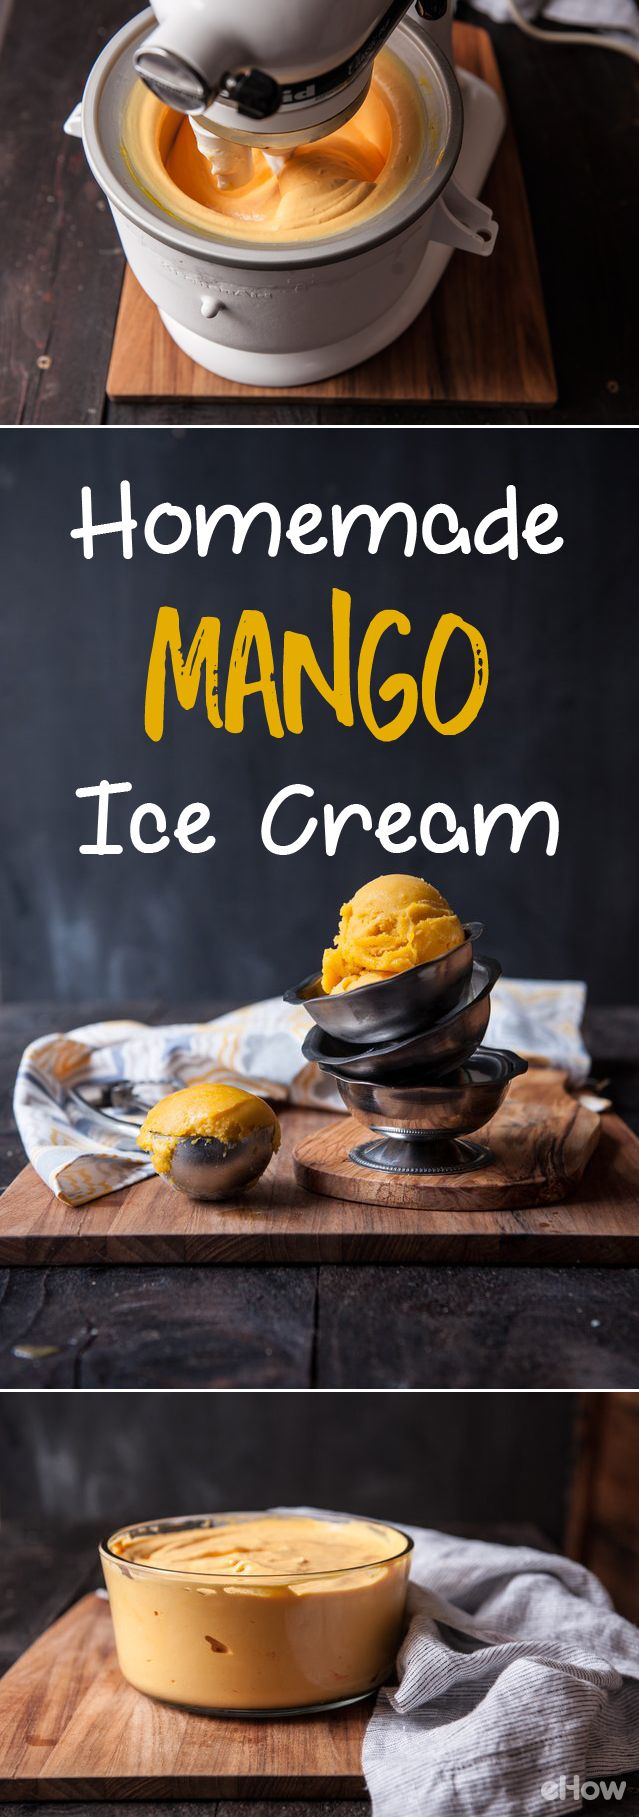 DIY fresh mango ice cream! This creamy, fresh treat is exactly what your summer needs! Recipe here: http://www.ehow.com/way_5445260_homemade-mango-ice-cream.html?utm_source=pinterest.com&utm_medium=referral&utm_content=freestyle&utm_campaign=fanpage